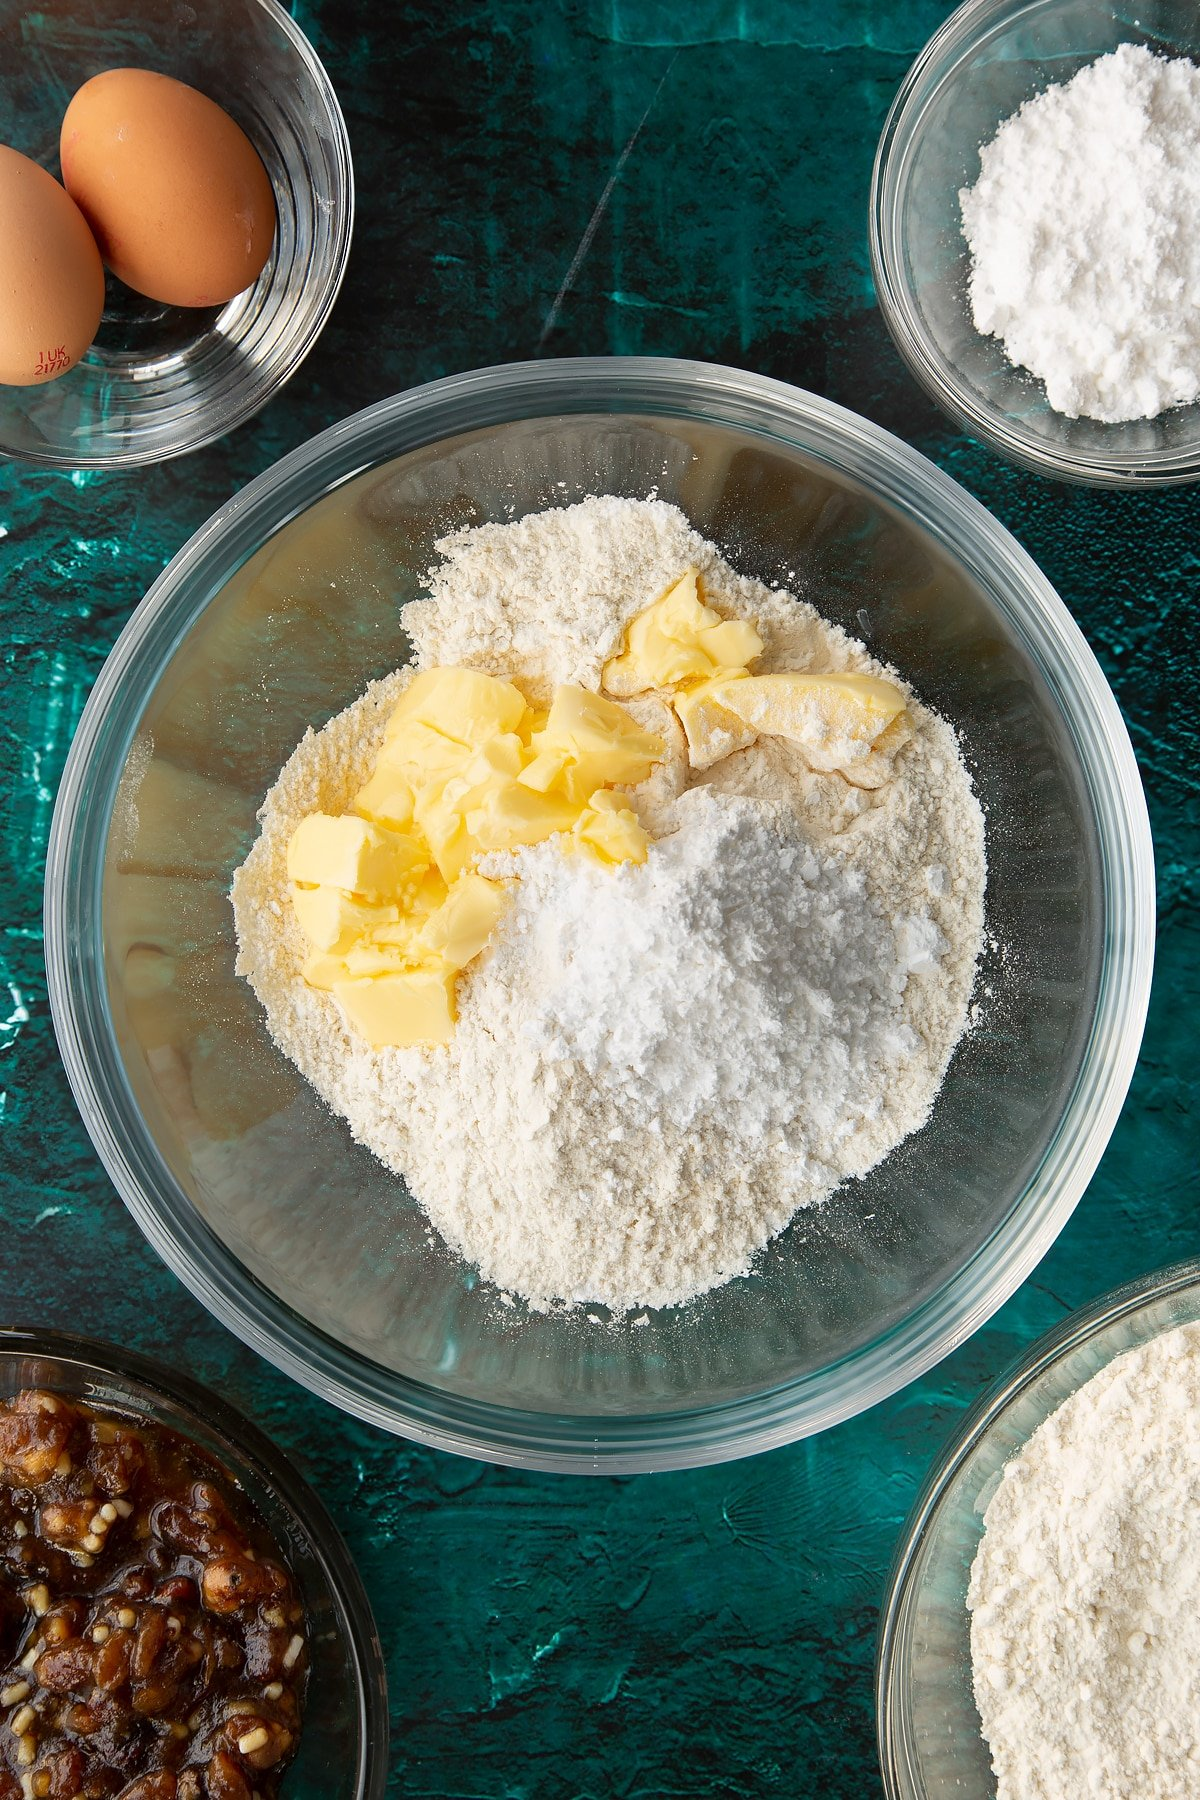 Flour, sugar and butter in a mixing bowl. Ingredients to make mini mince pies surround the bowl.